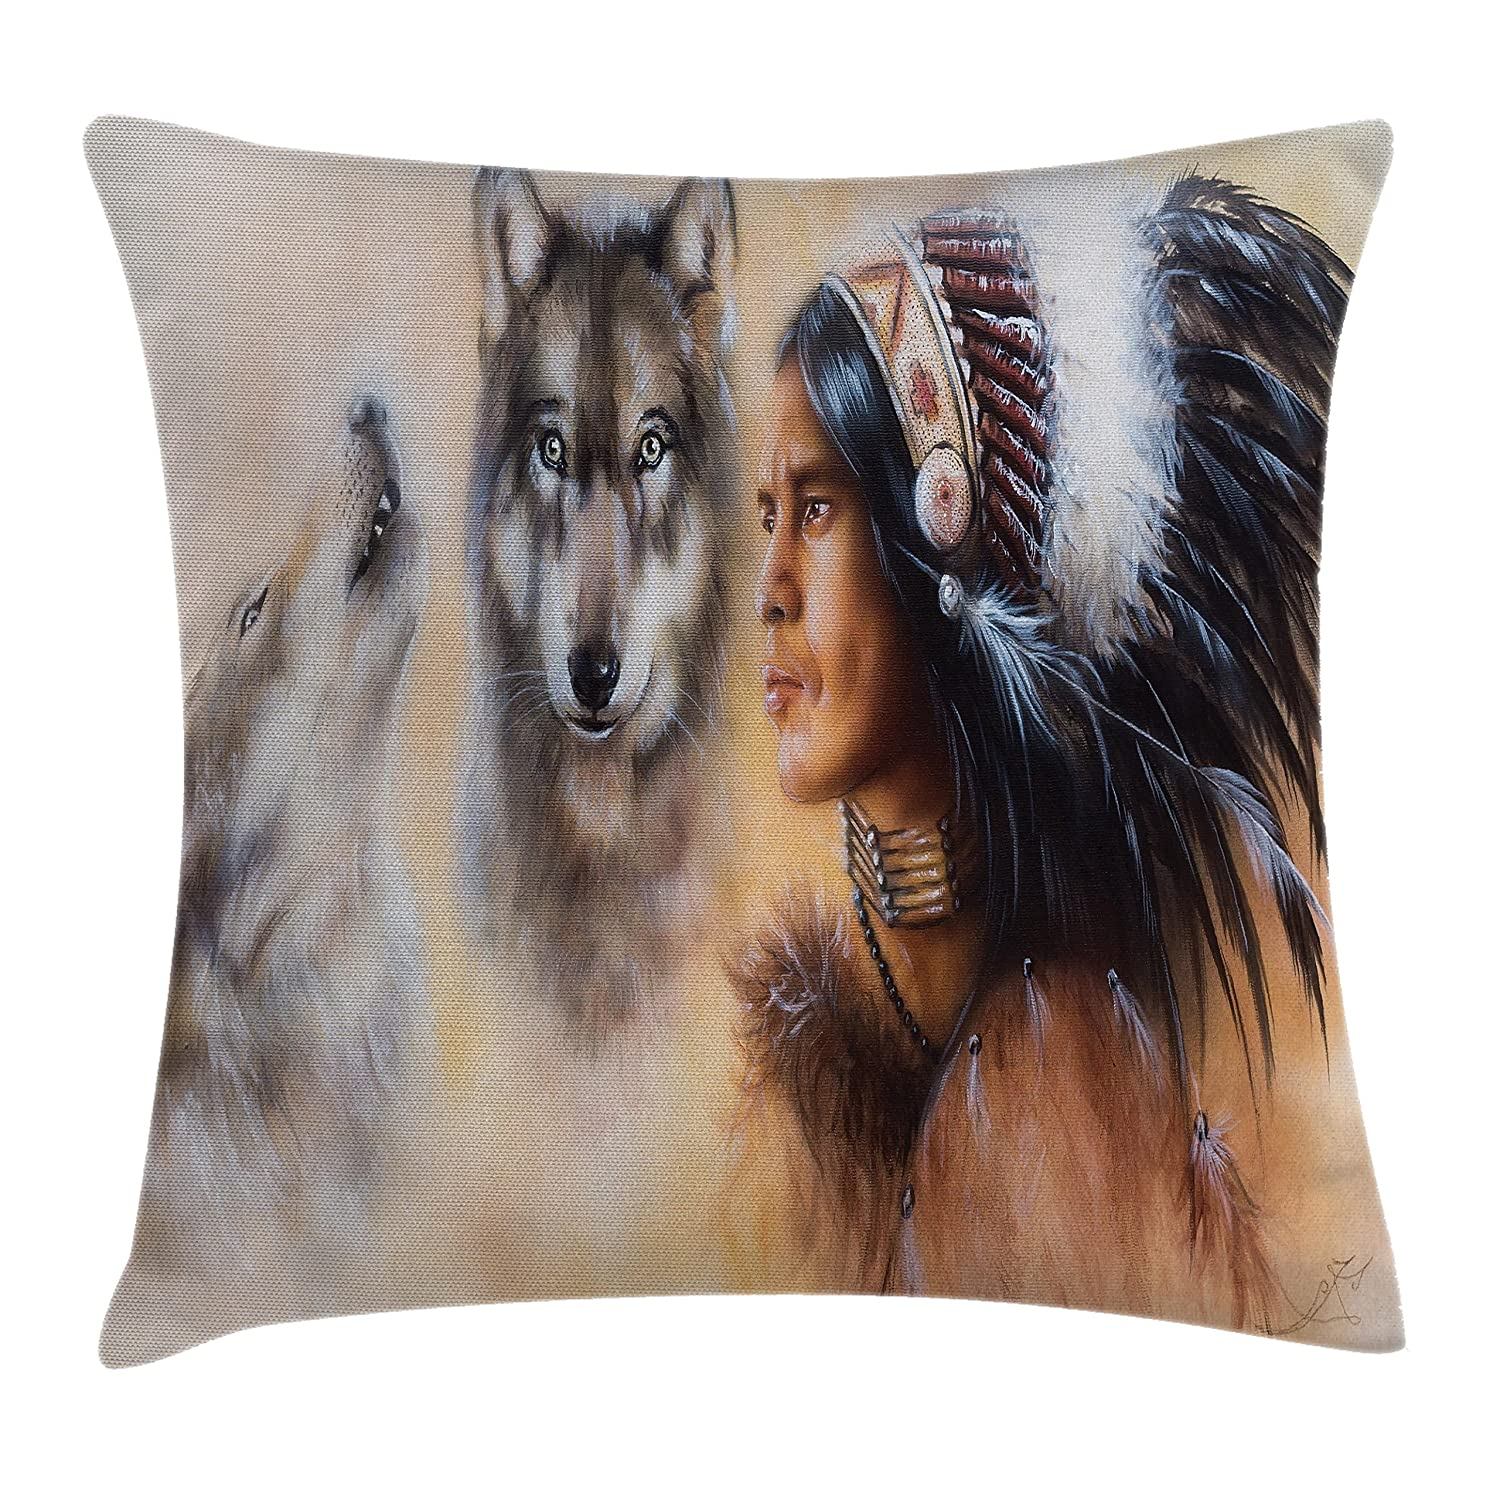 Blur Mystic Painting of Young Native Man Ethnic Feather with Wolves Ancient Ambesonne Native American Throw Pillow Cushion Cover 20 X 20 Inches Multicolor Decorative Square Accent Pillow Case